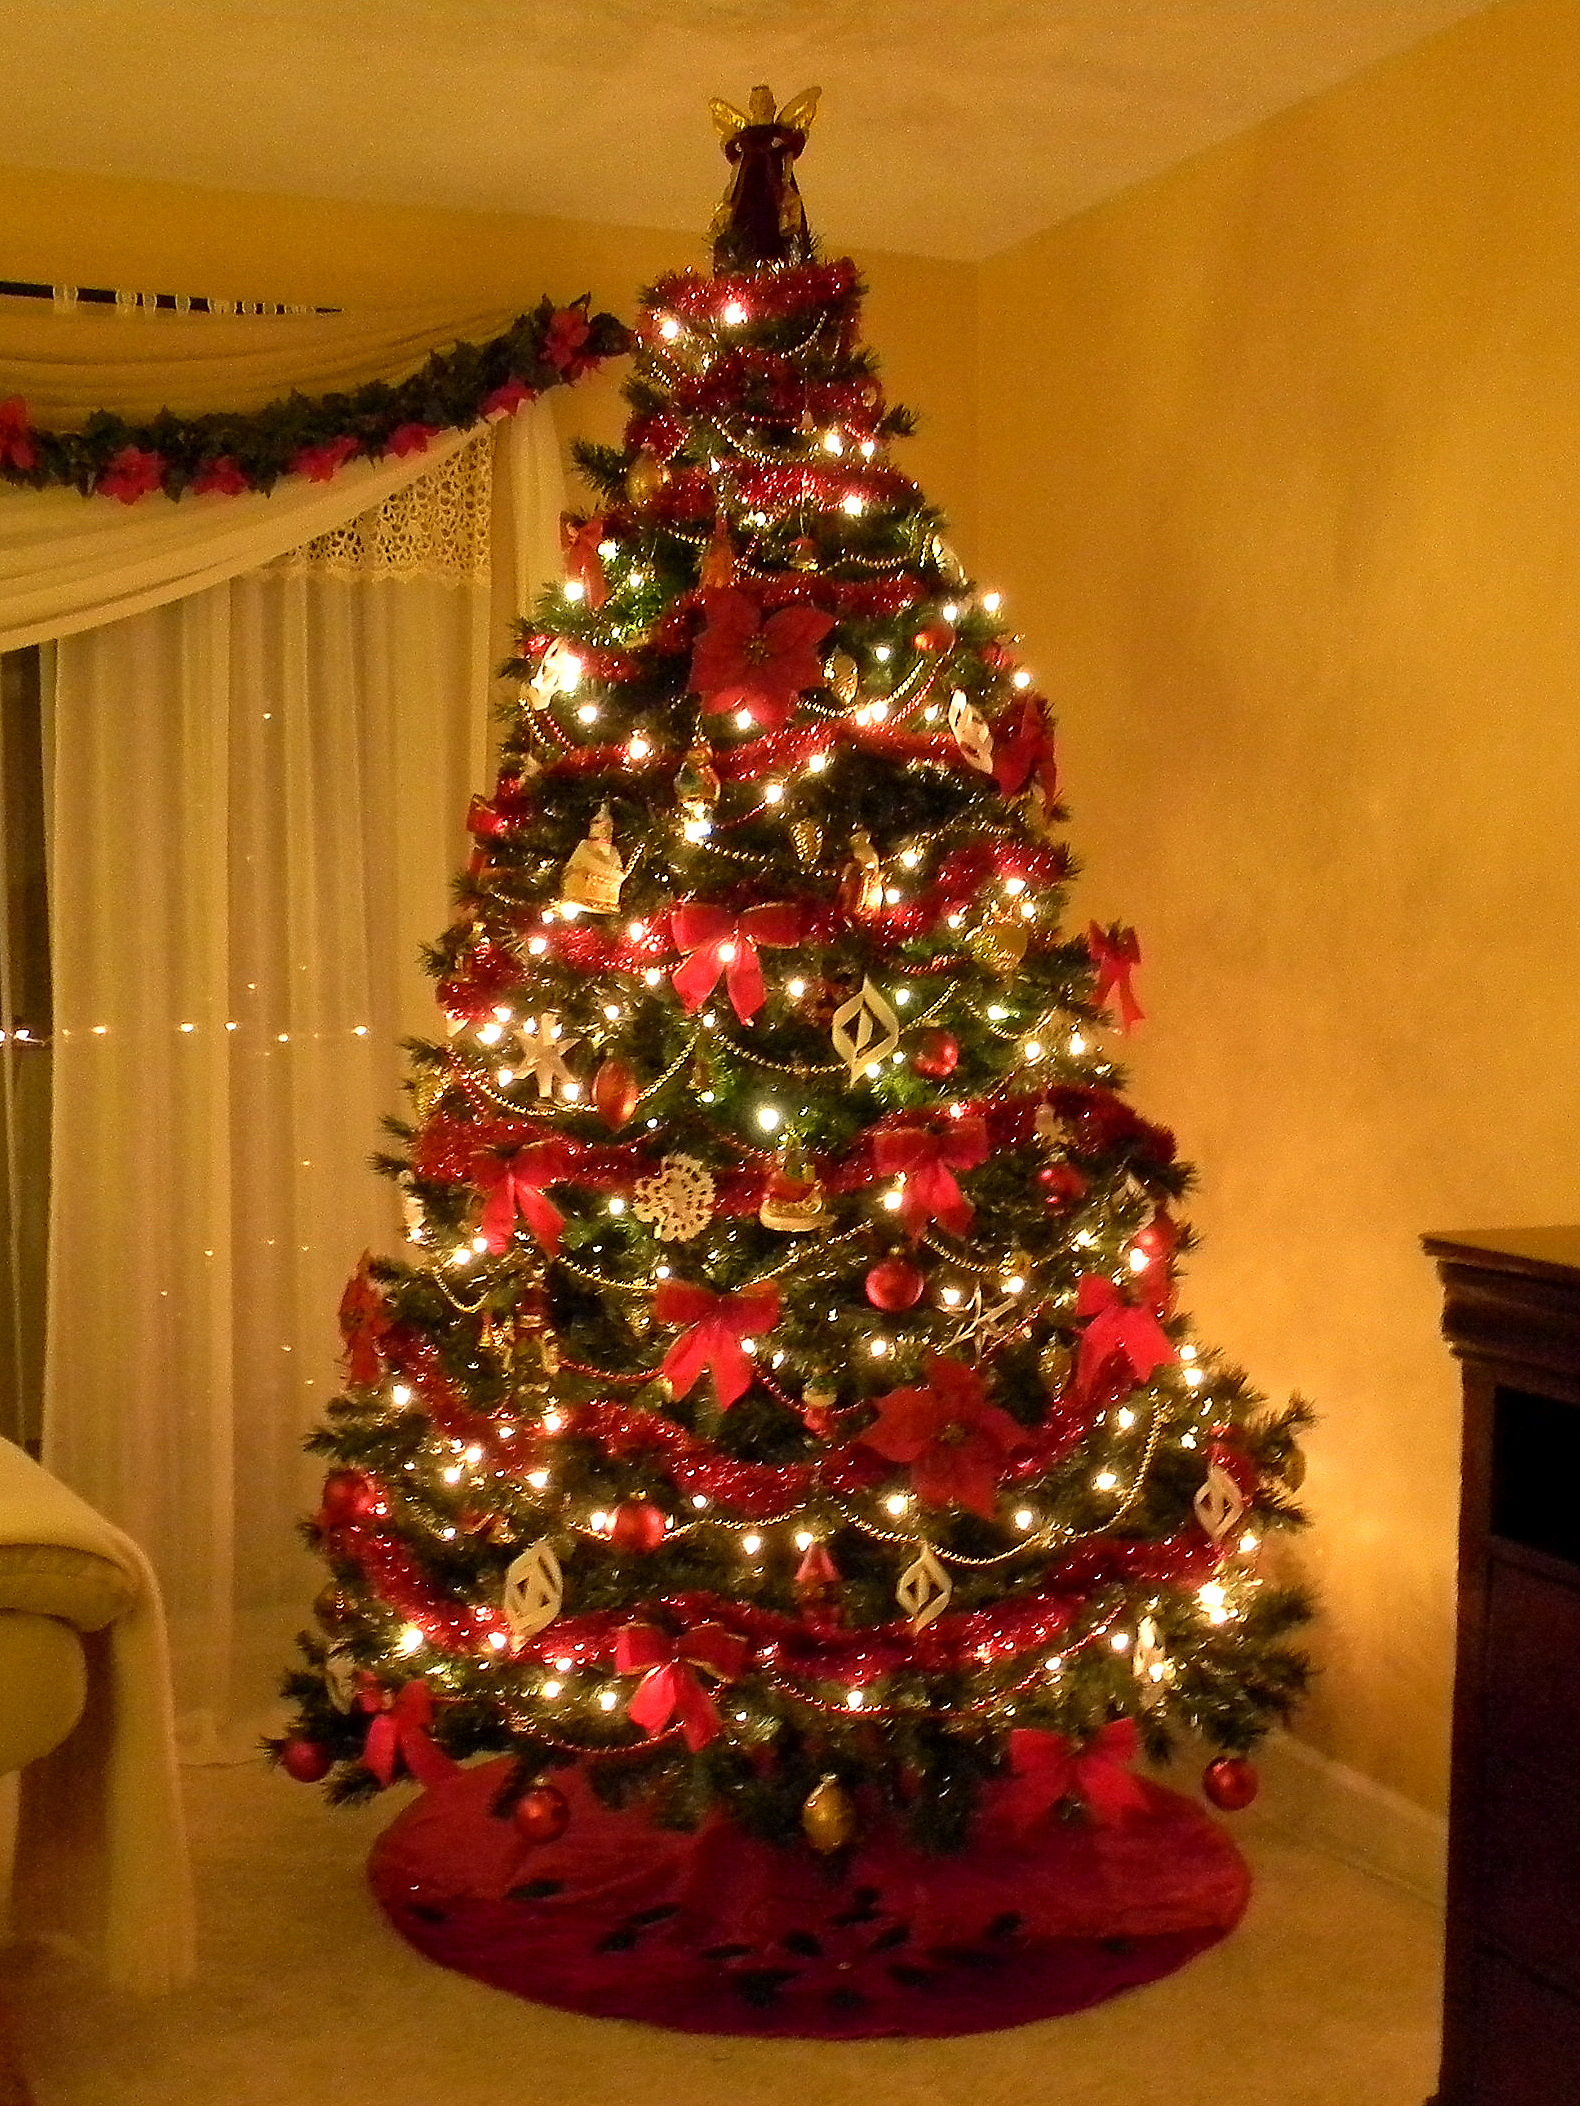 The 2012 best decorated christmas tree contest - Christmas tree decorating best ideas ...